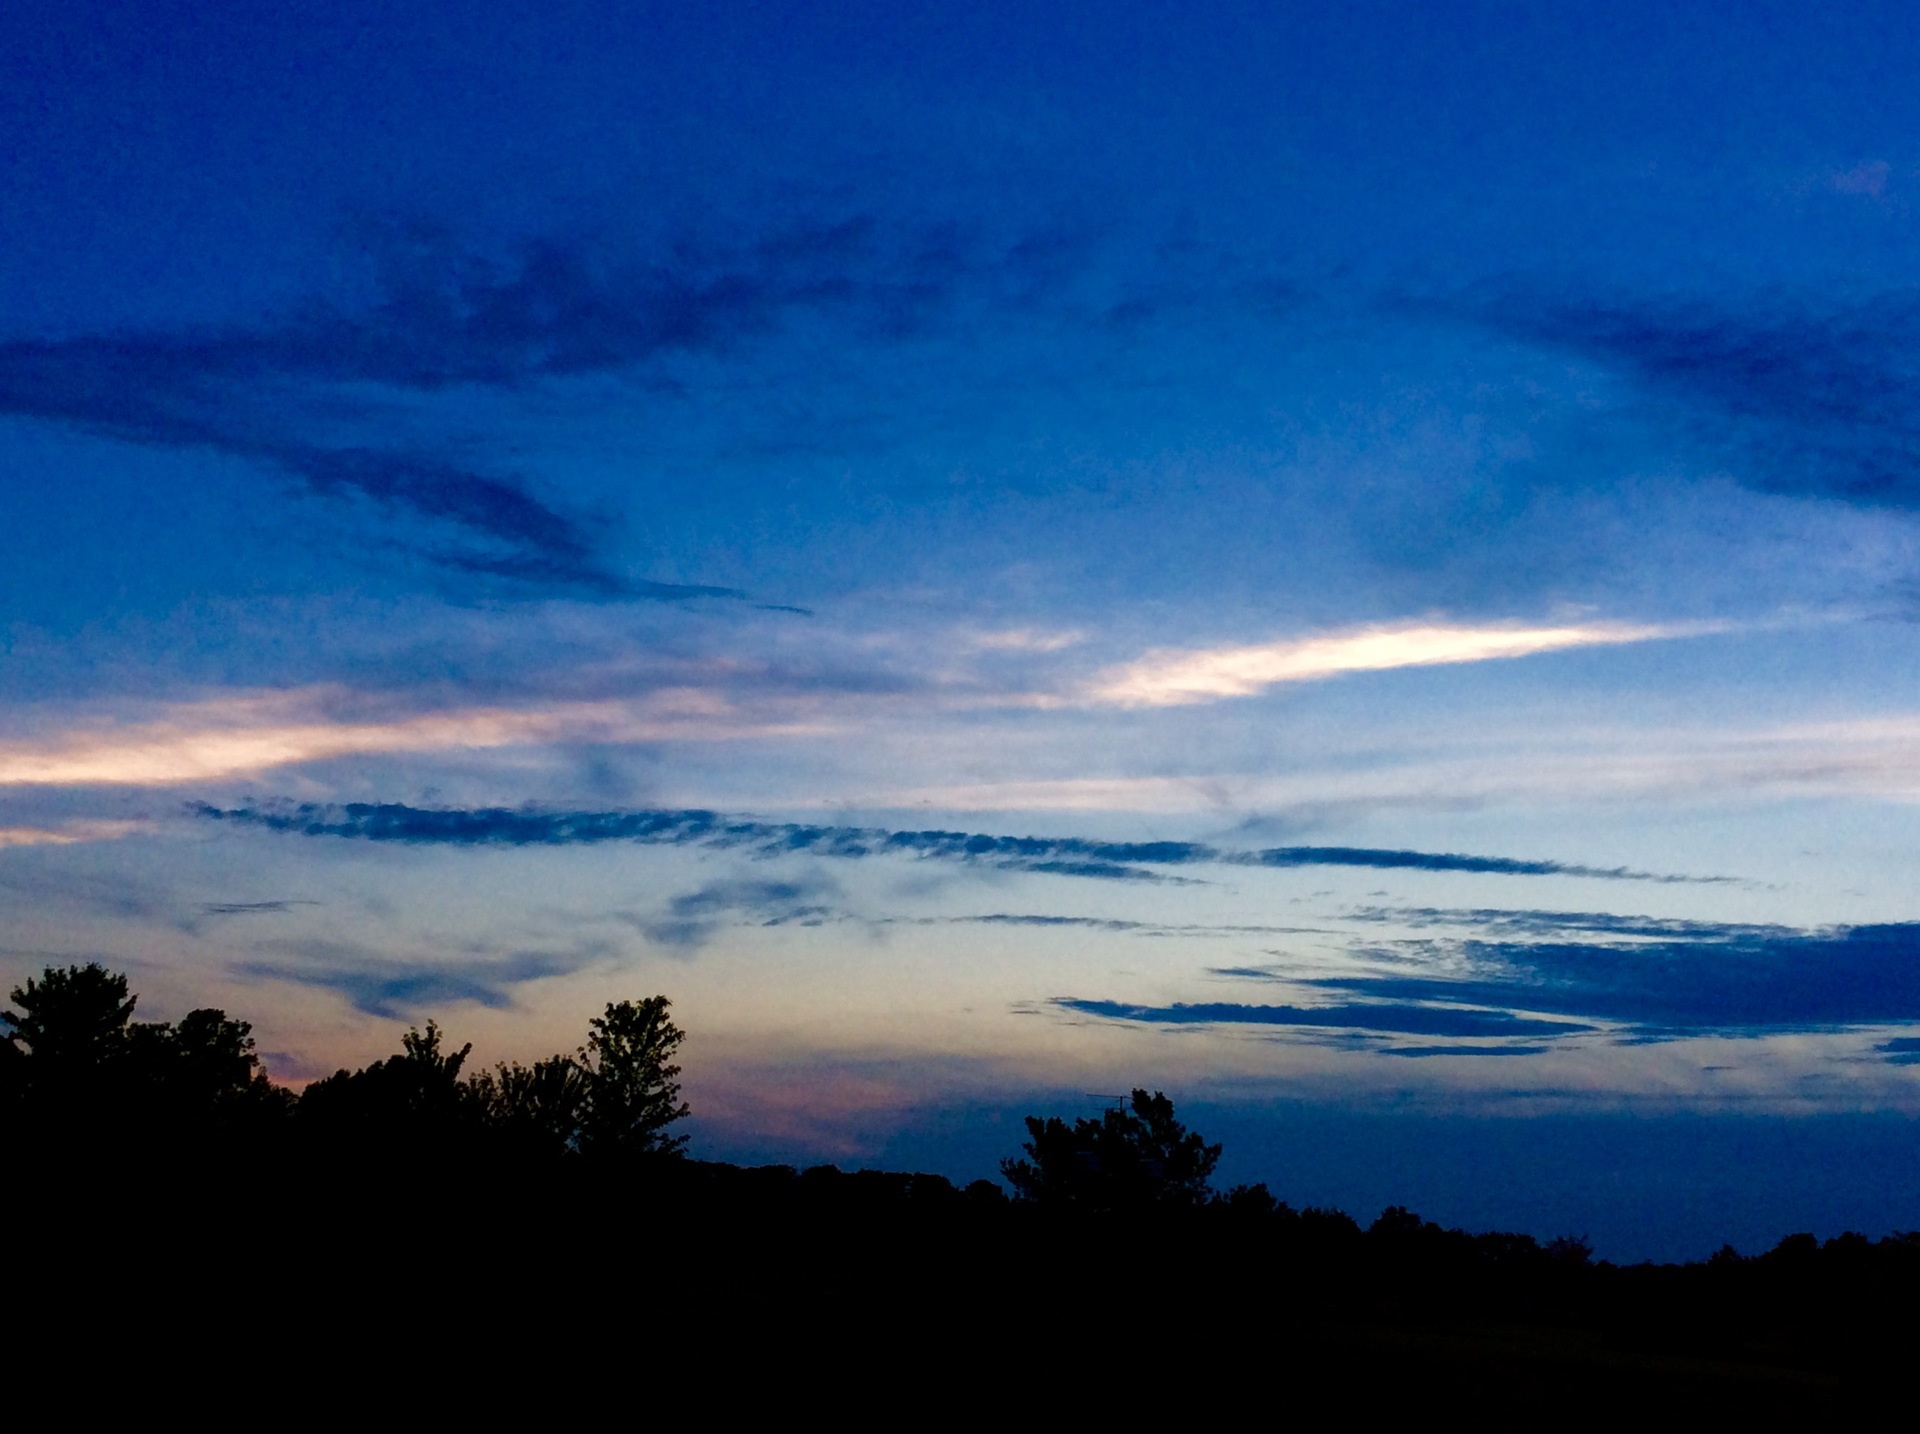 Evening sky | twilight, night, nature, landscape